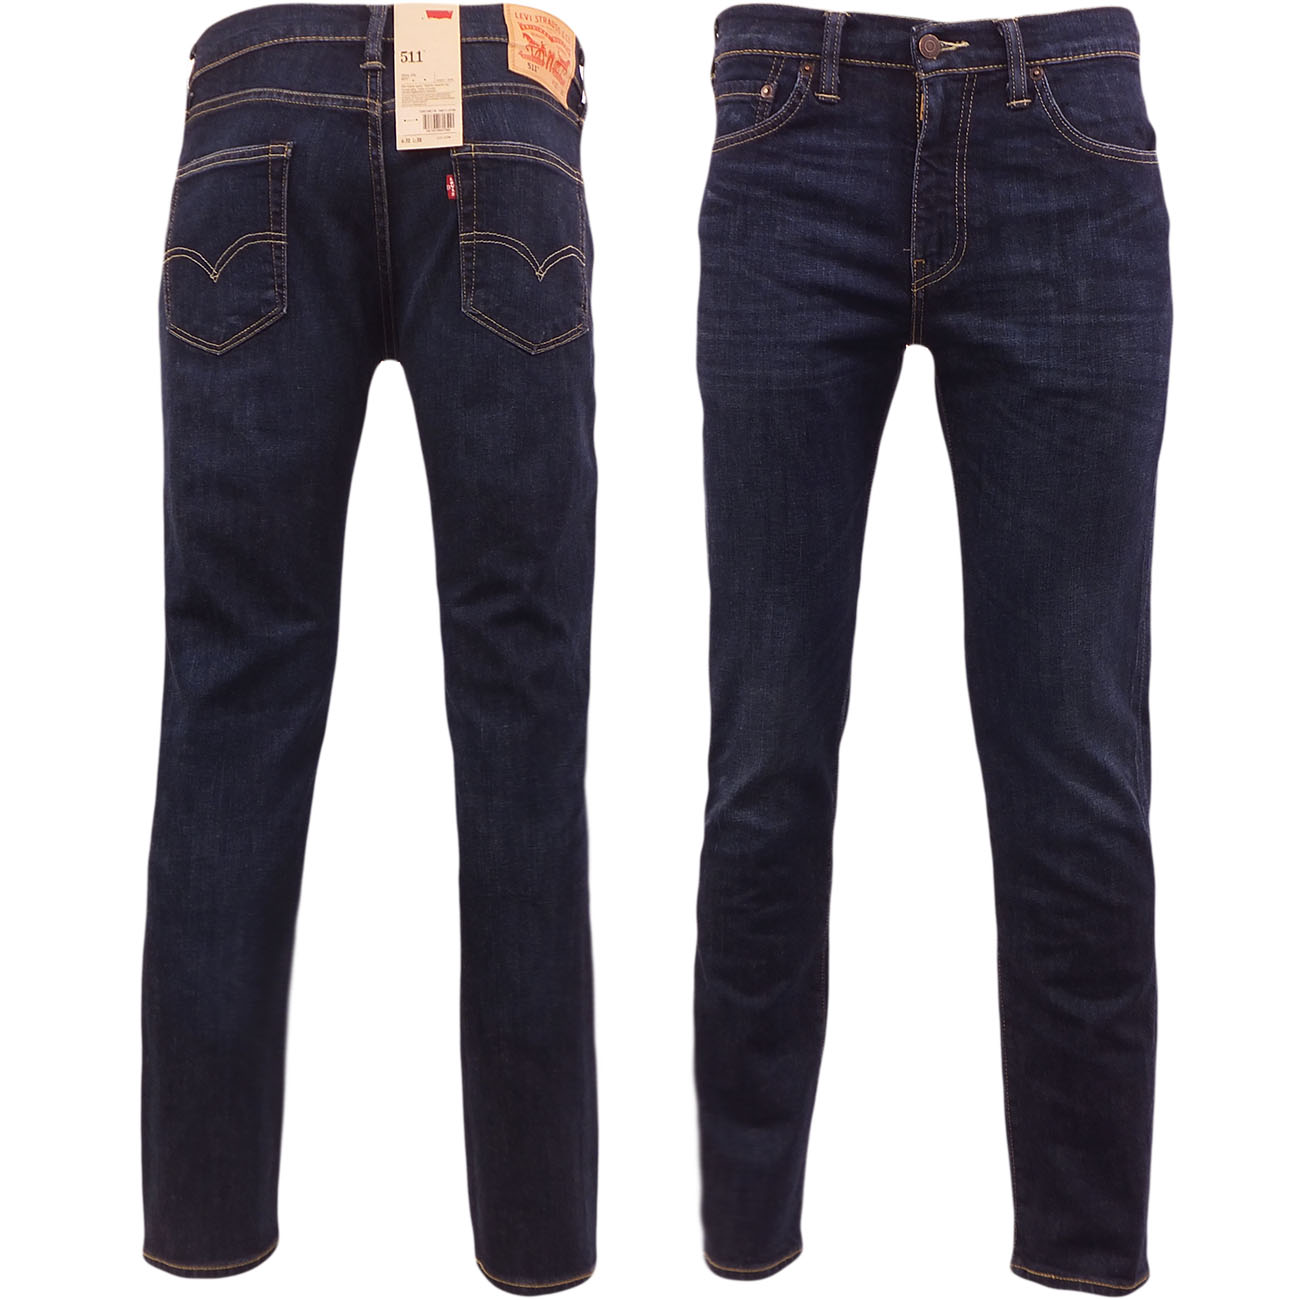 Shop Dillard's for men's slim-fit jeans from your favorite brands like Buffalo David Bitton, Joe's Jeans, Levi's, and more.